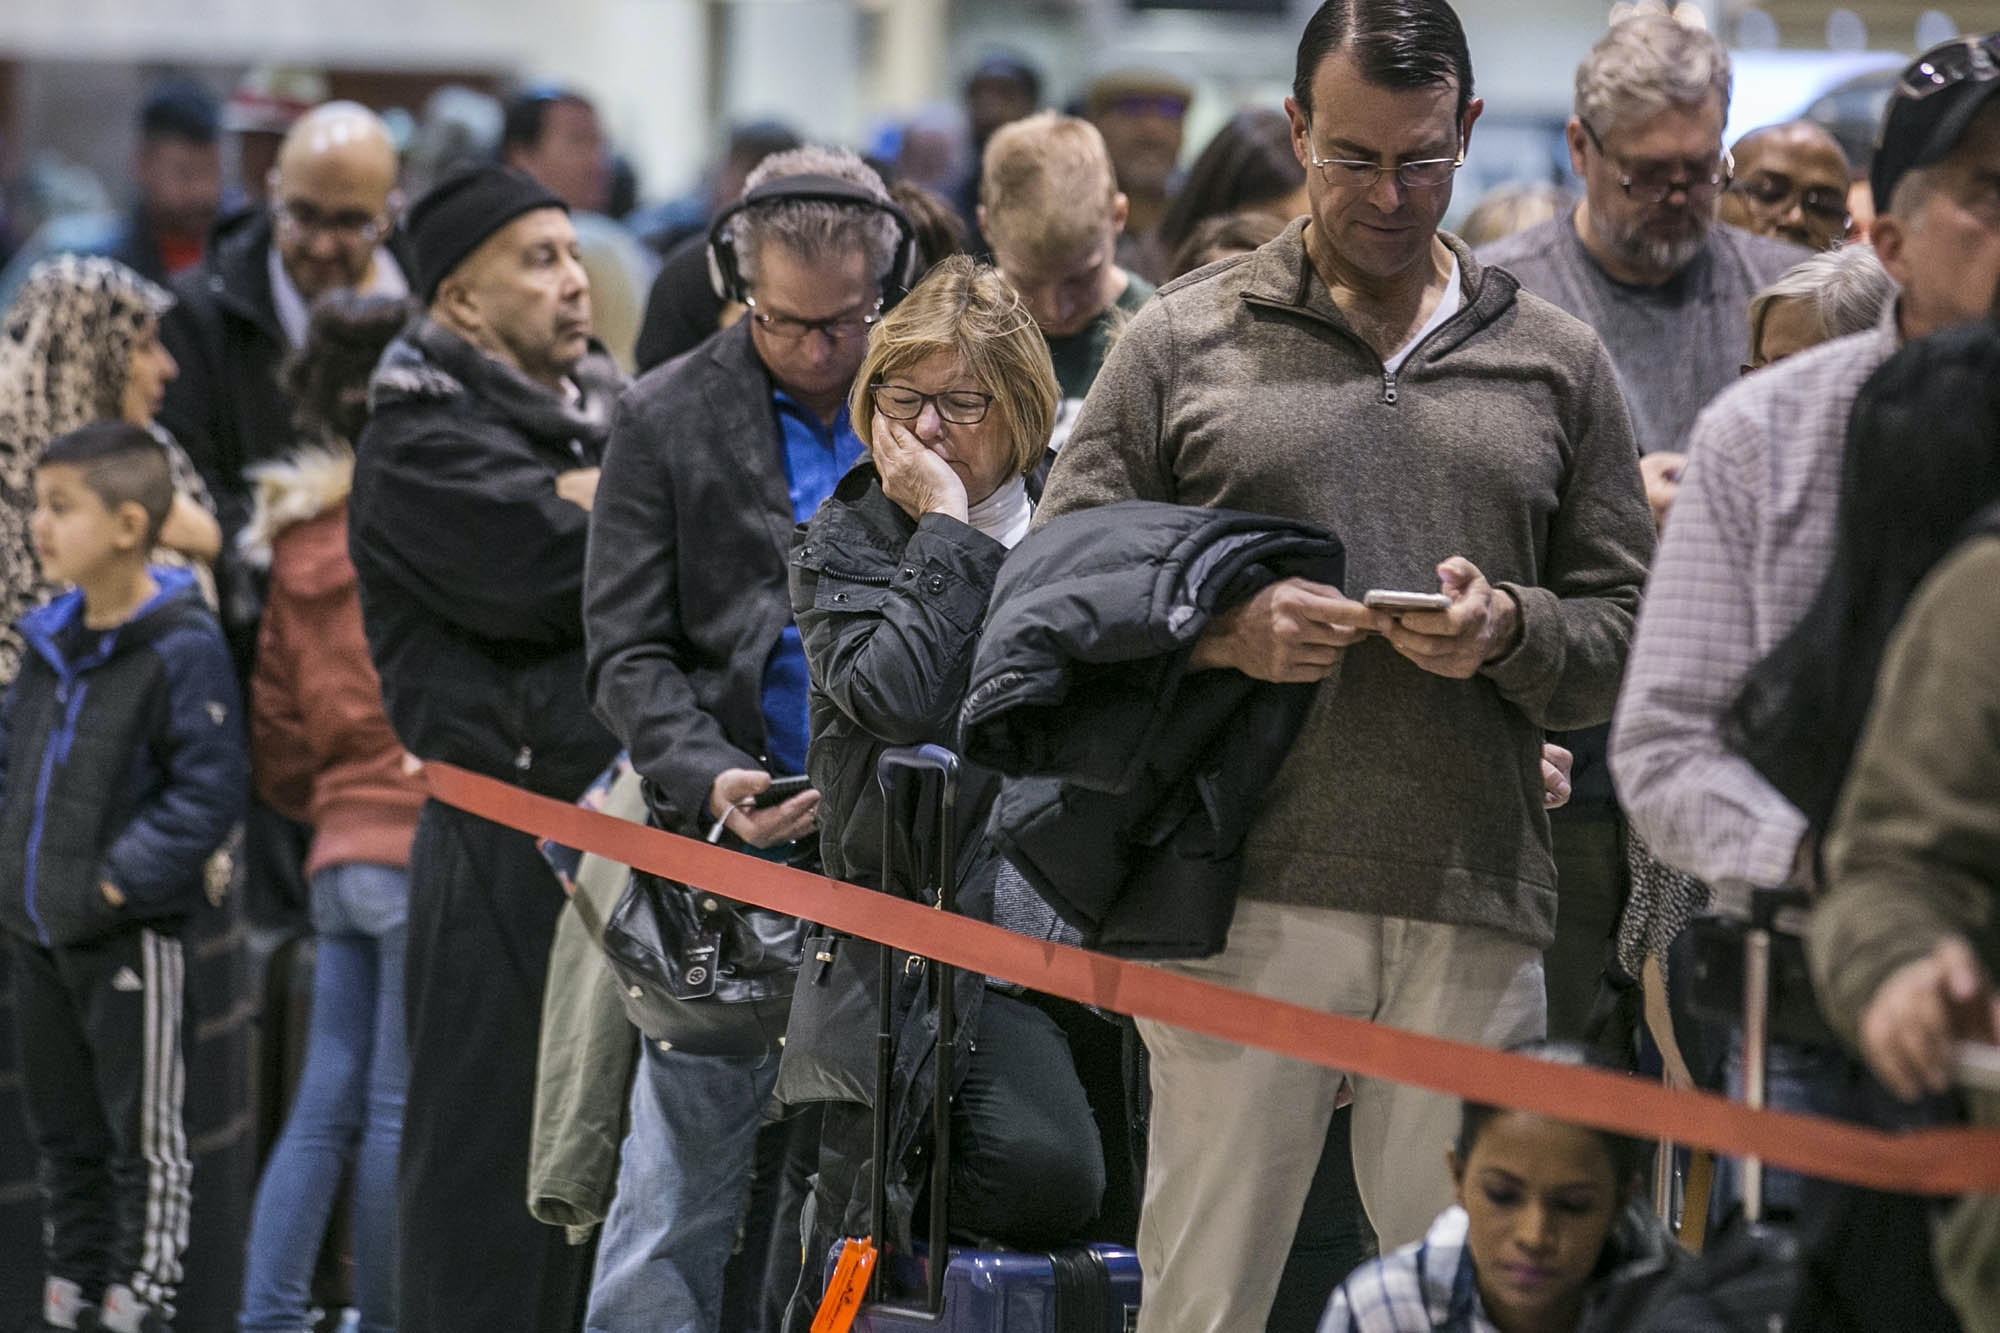 There were at least six security lanes closed at domestic terminal security checkpoints in Atlanta reflecting staffing shortages as TSA officers have been working without pay since the federal shutdown began December 22, 2018.